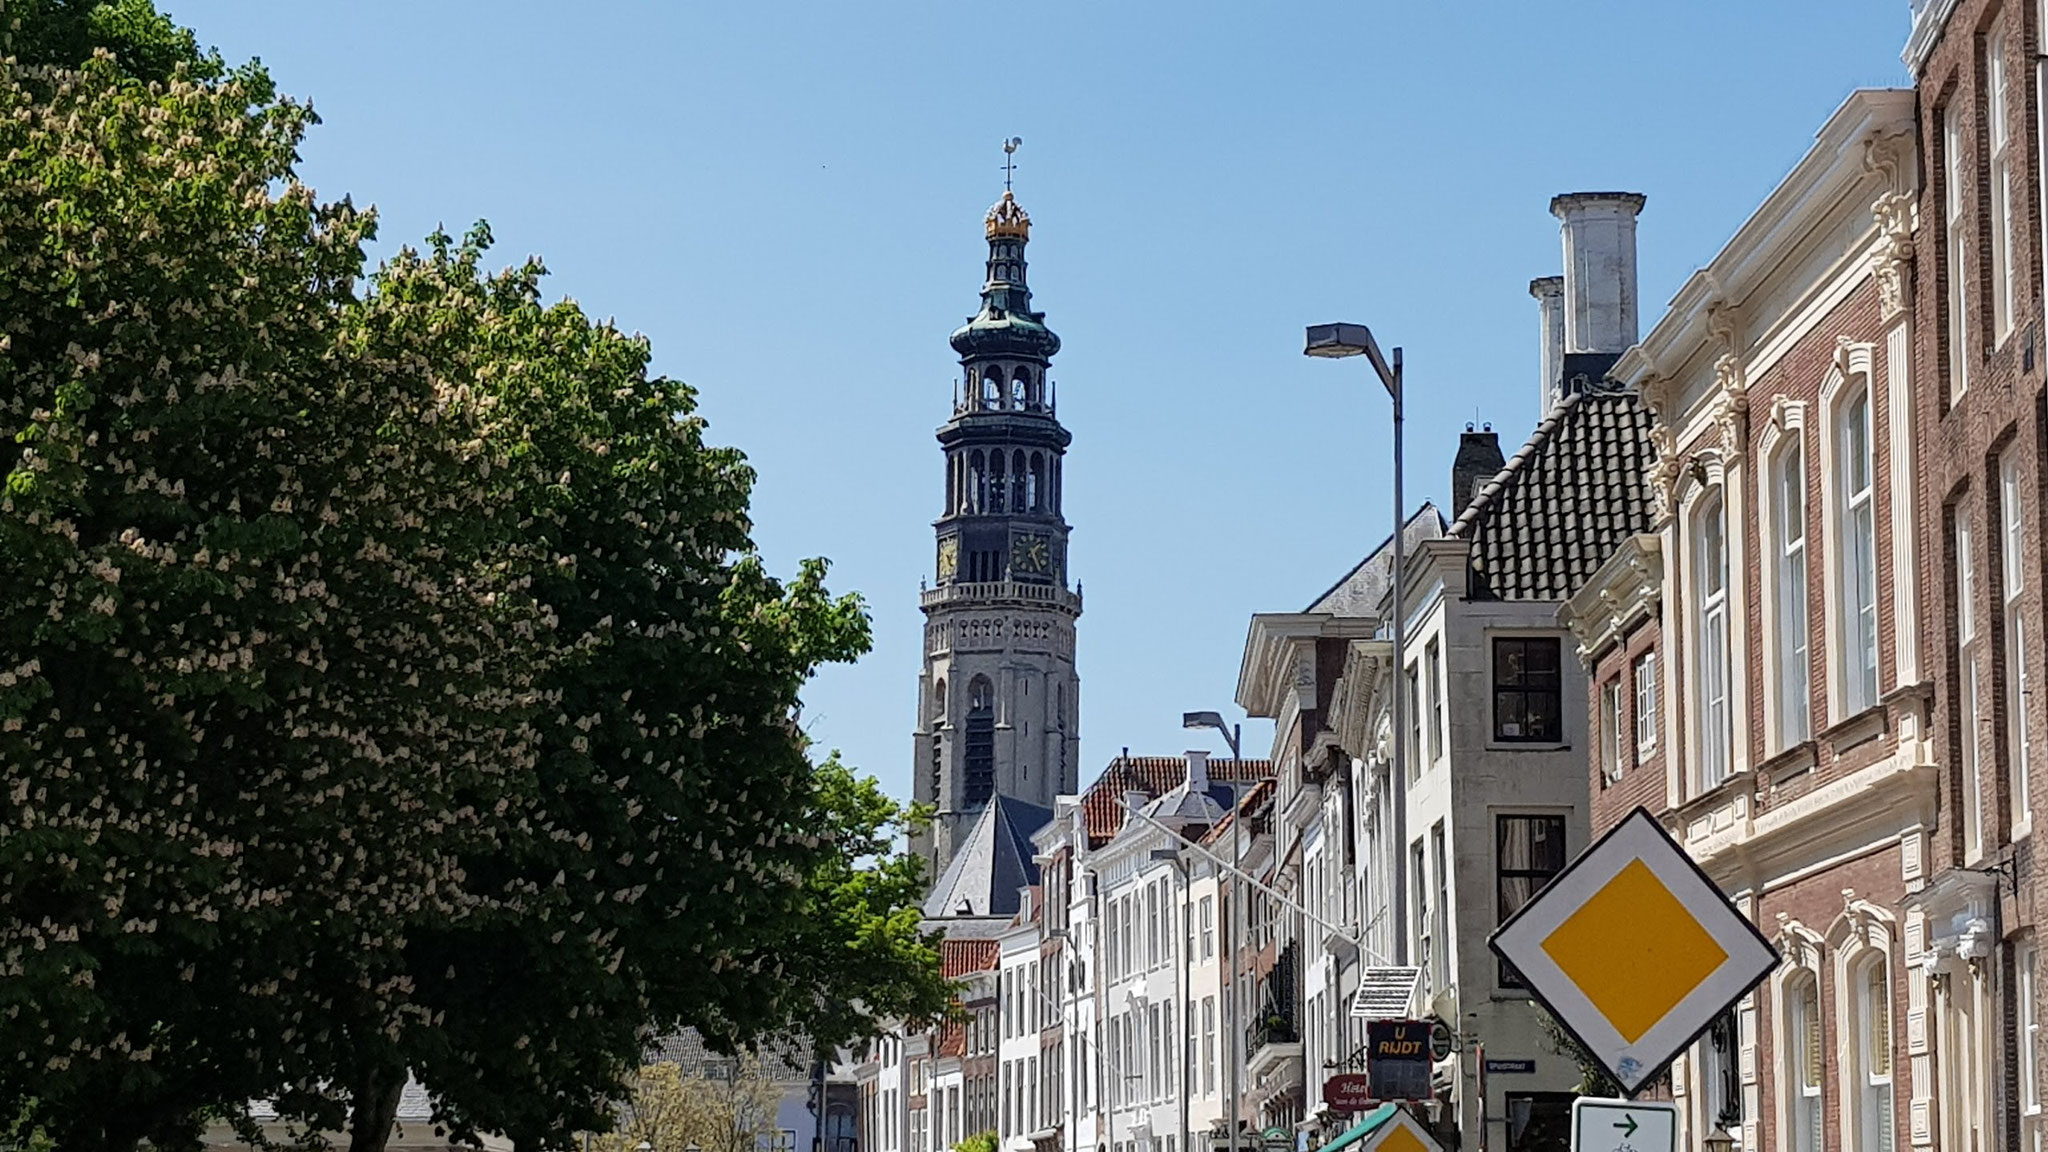 Long John Abbey Tower in Middelburg